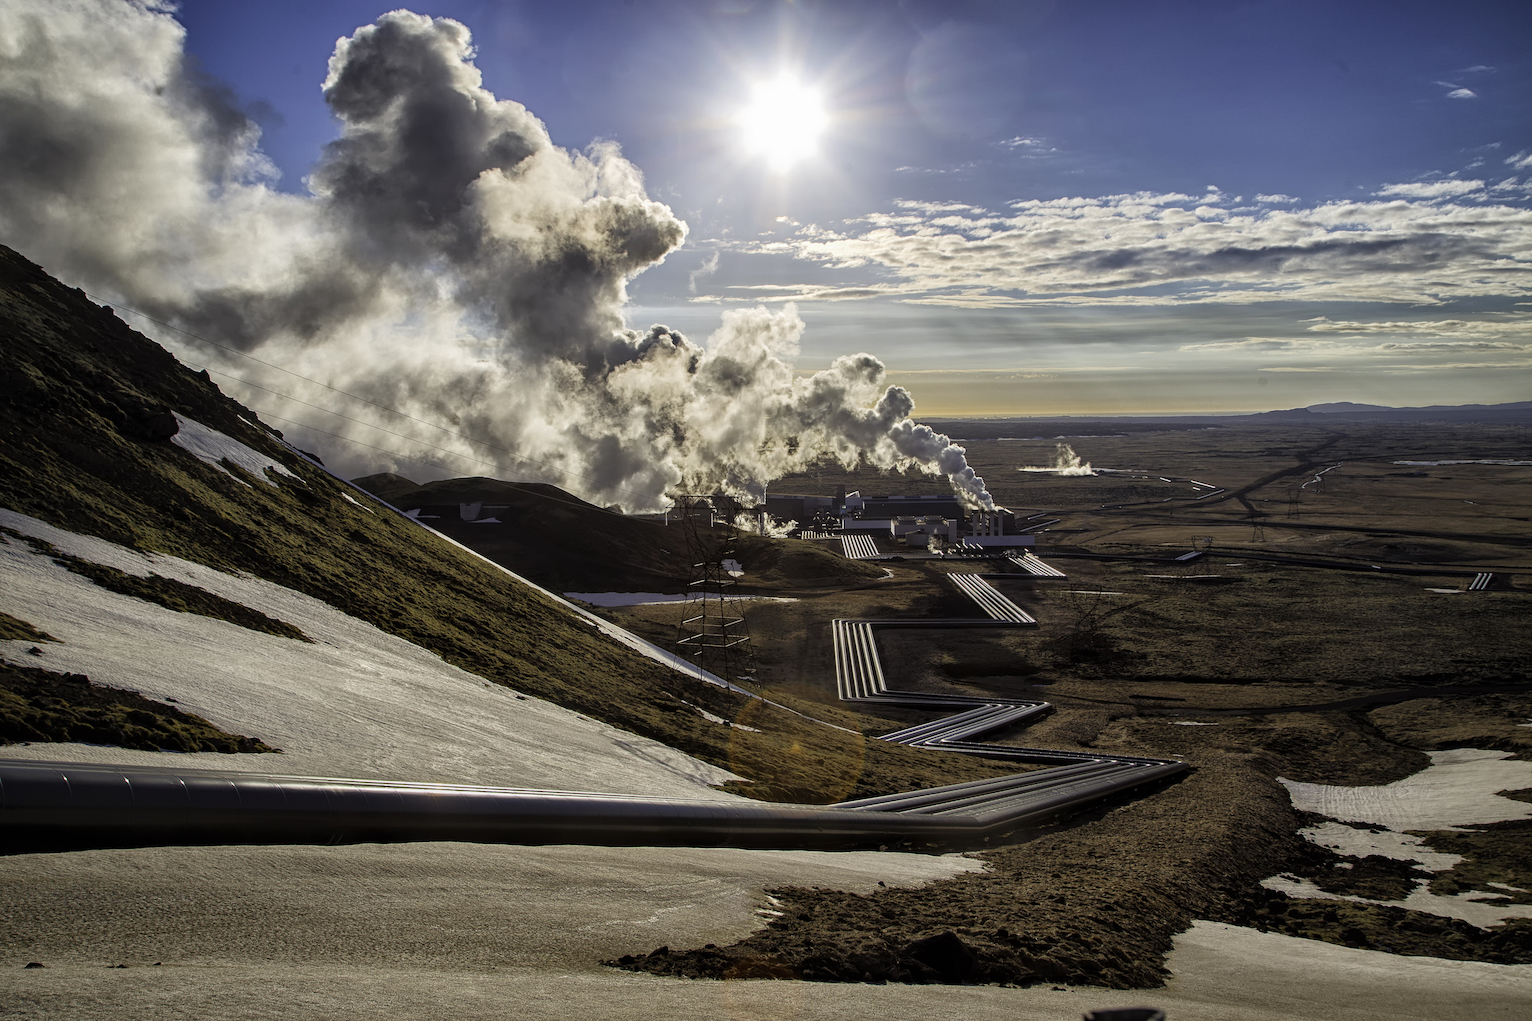 Scientists in Iceland are not just trapping carbon dioxide (CO2) and storing it underground - they have developed a way to solidify the gas and turn it into rocks so that the CO2 will not reach the atmosphere for millions of years.